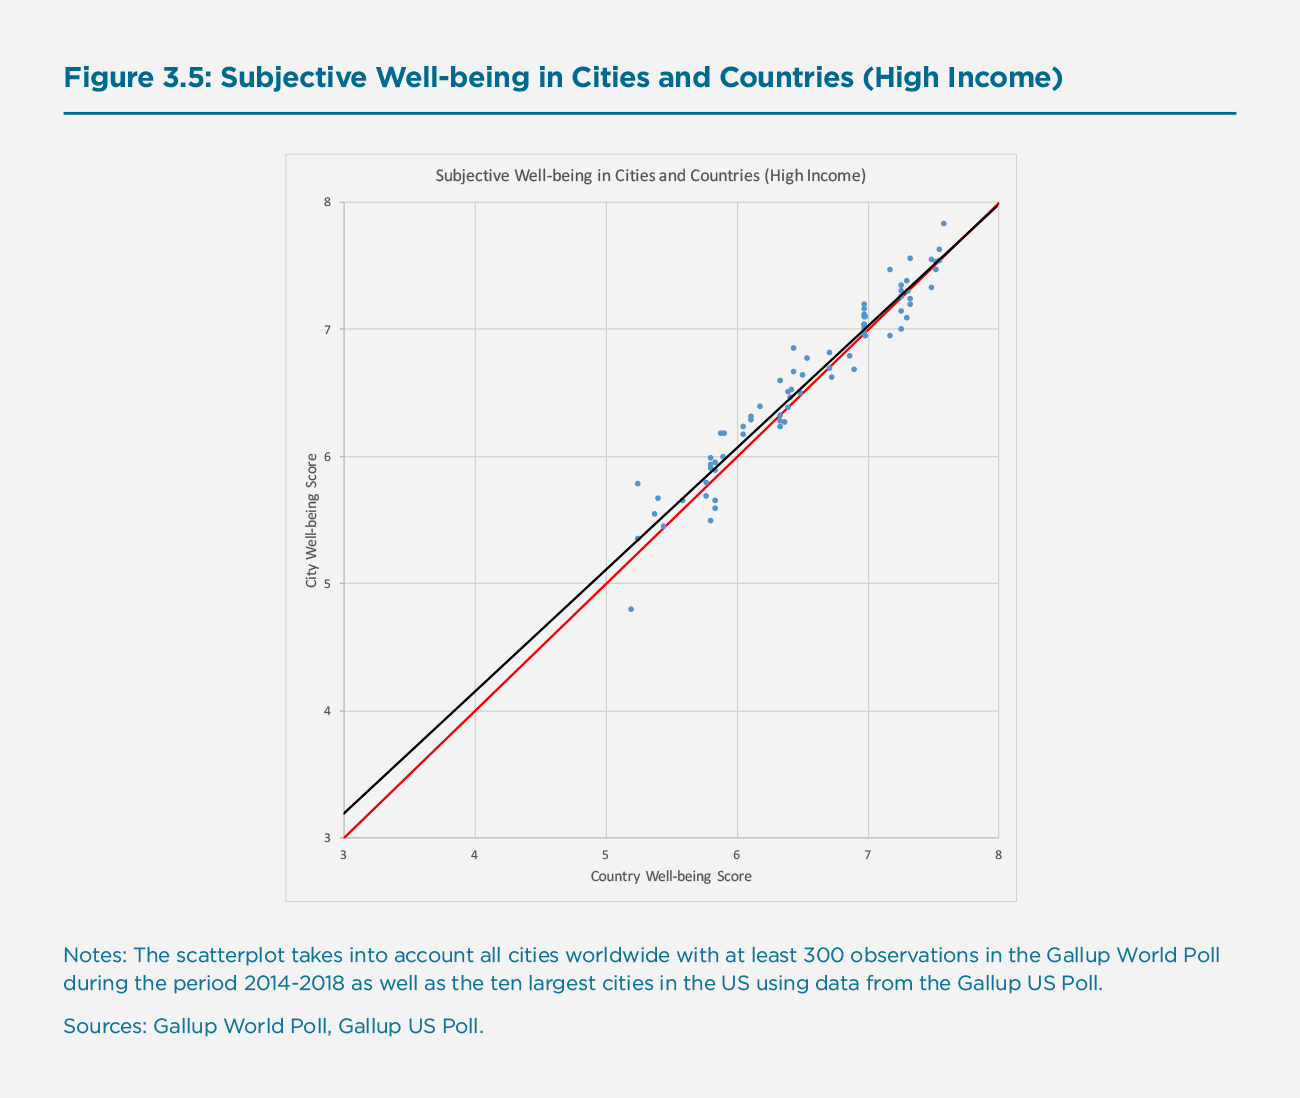 Figure 3.5: Subjective Well-being in Cities and Countries (High Income)